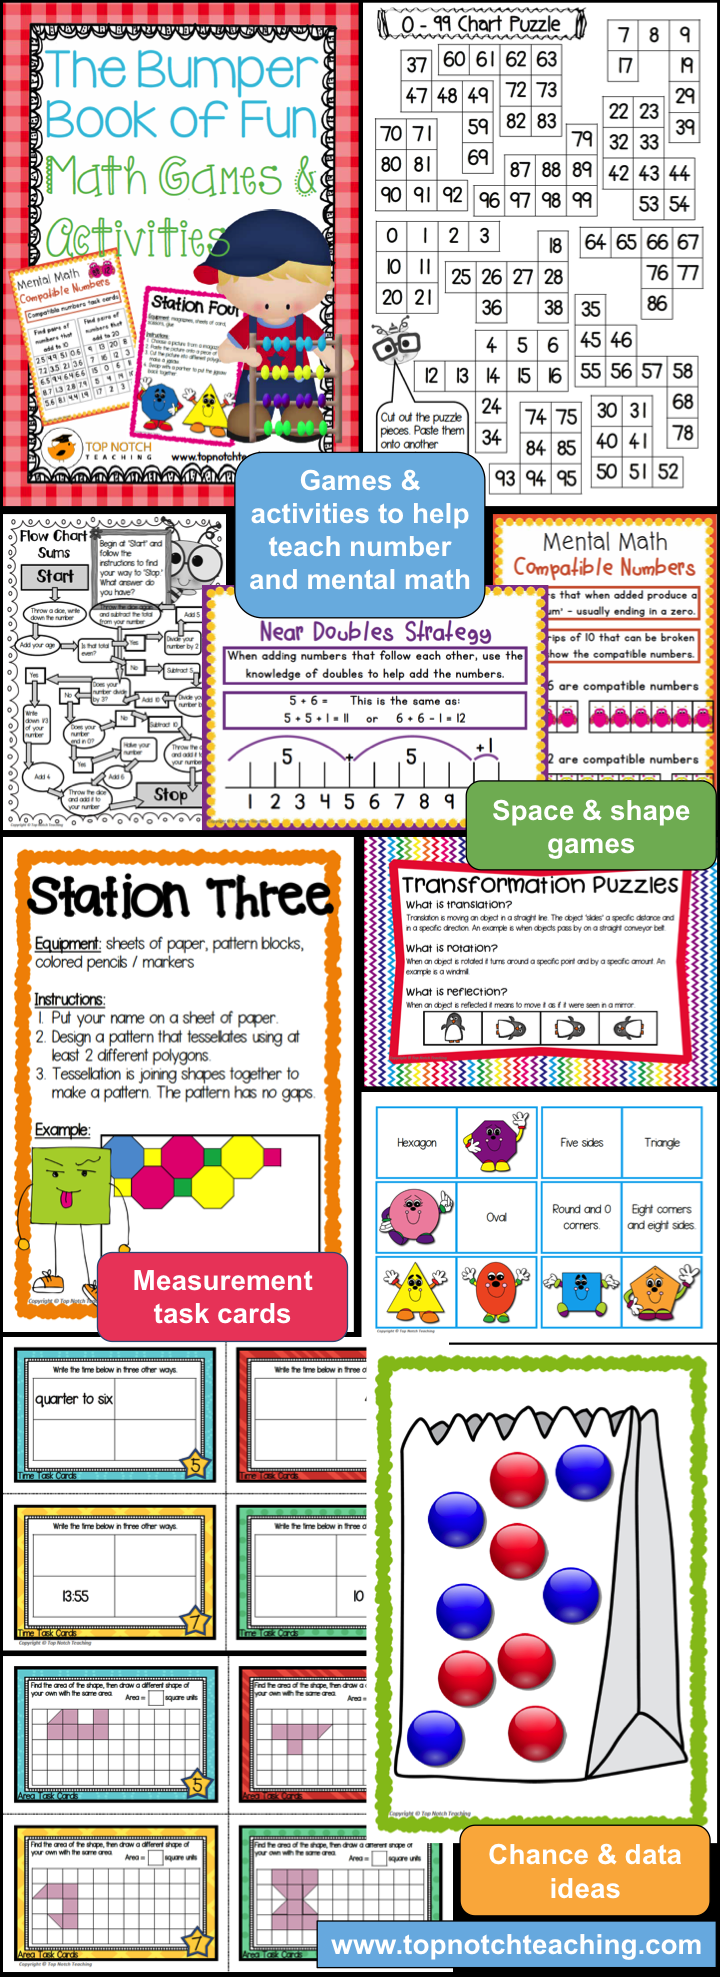 At times it can be challenging to engage children during math lessons as well as provide the content needed in order to meet the demands of the curriculum. That is why I'm very excited to share with you some of my favorite math games and activities.